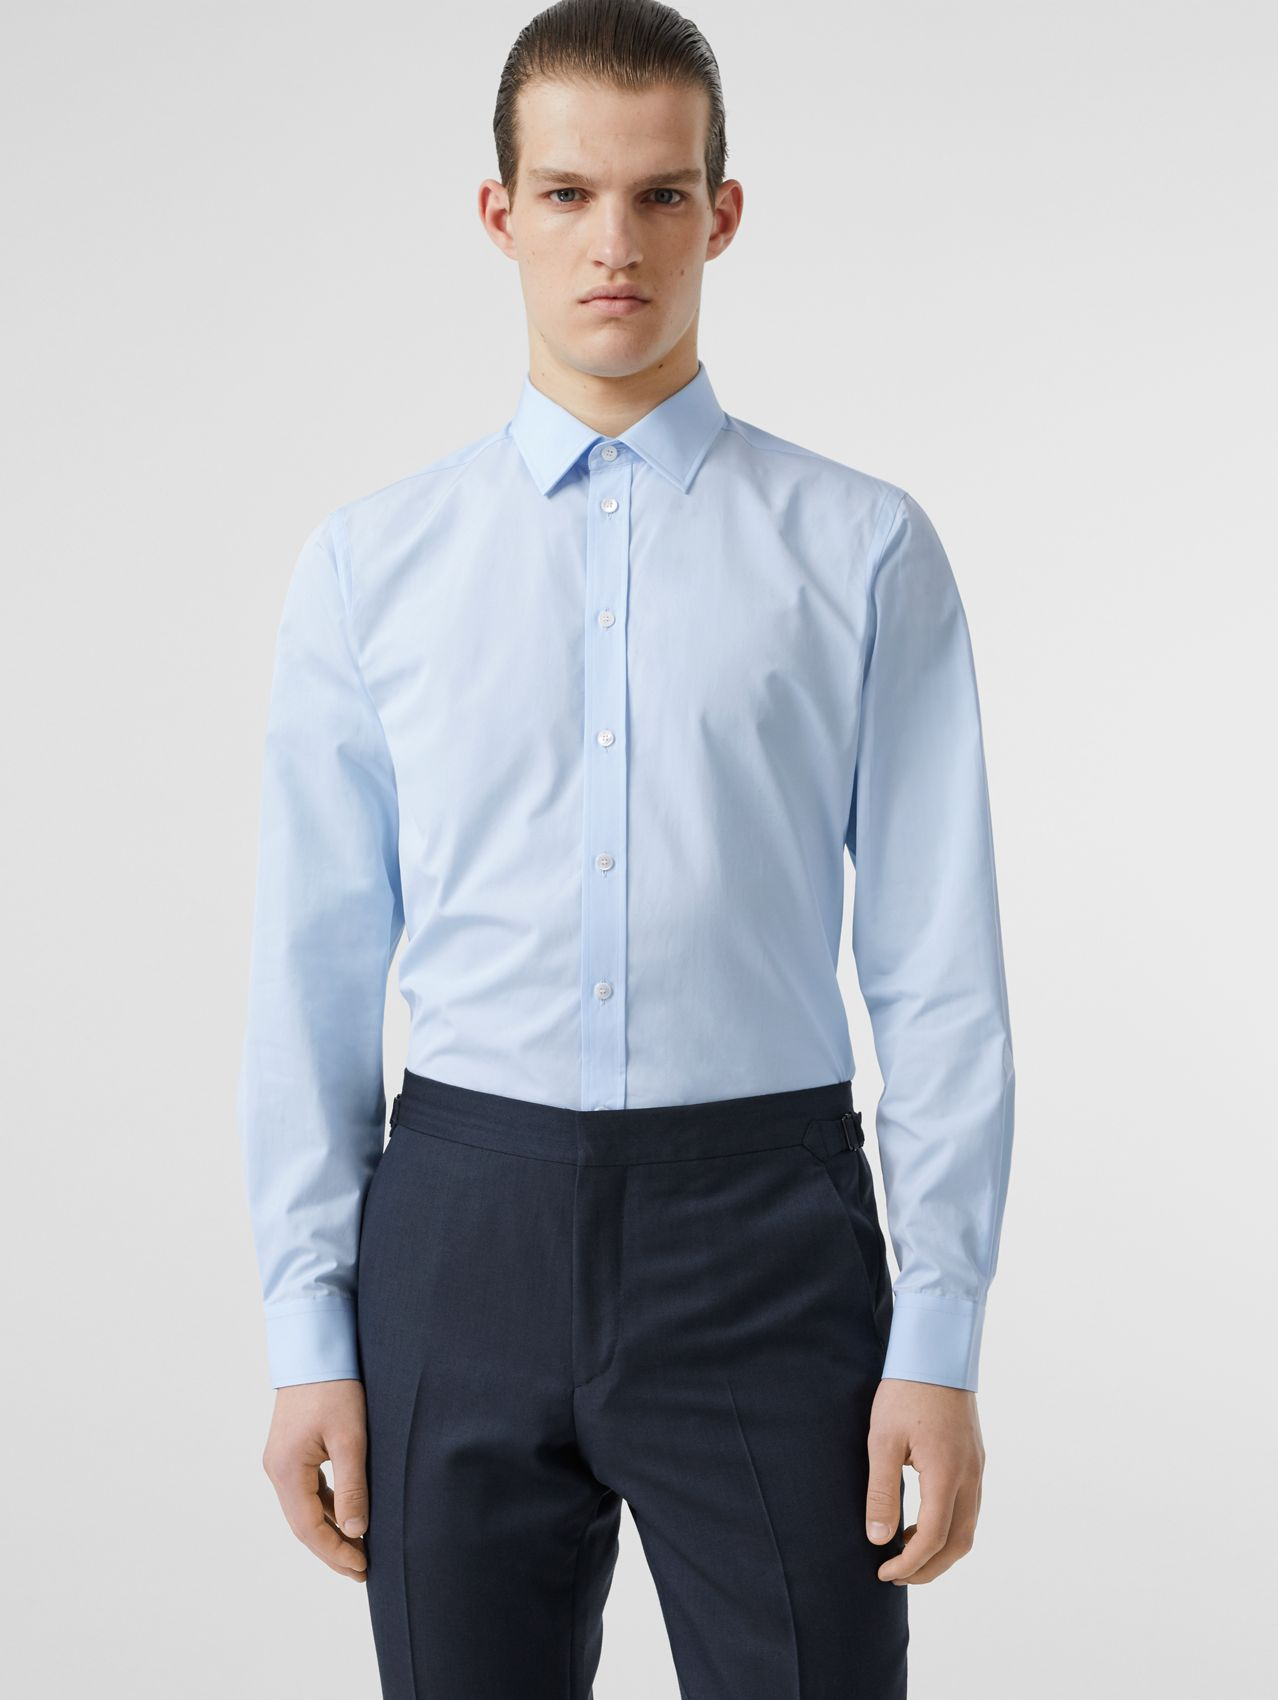 Slim Fit Monogram Motif Cotton Poplin Shirt (Pale Blue)